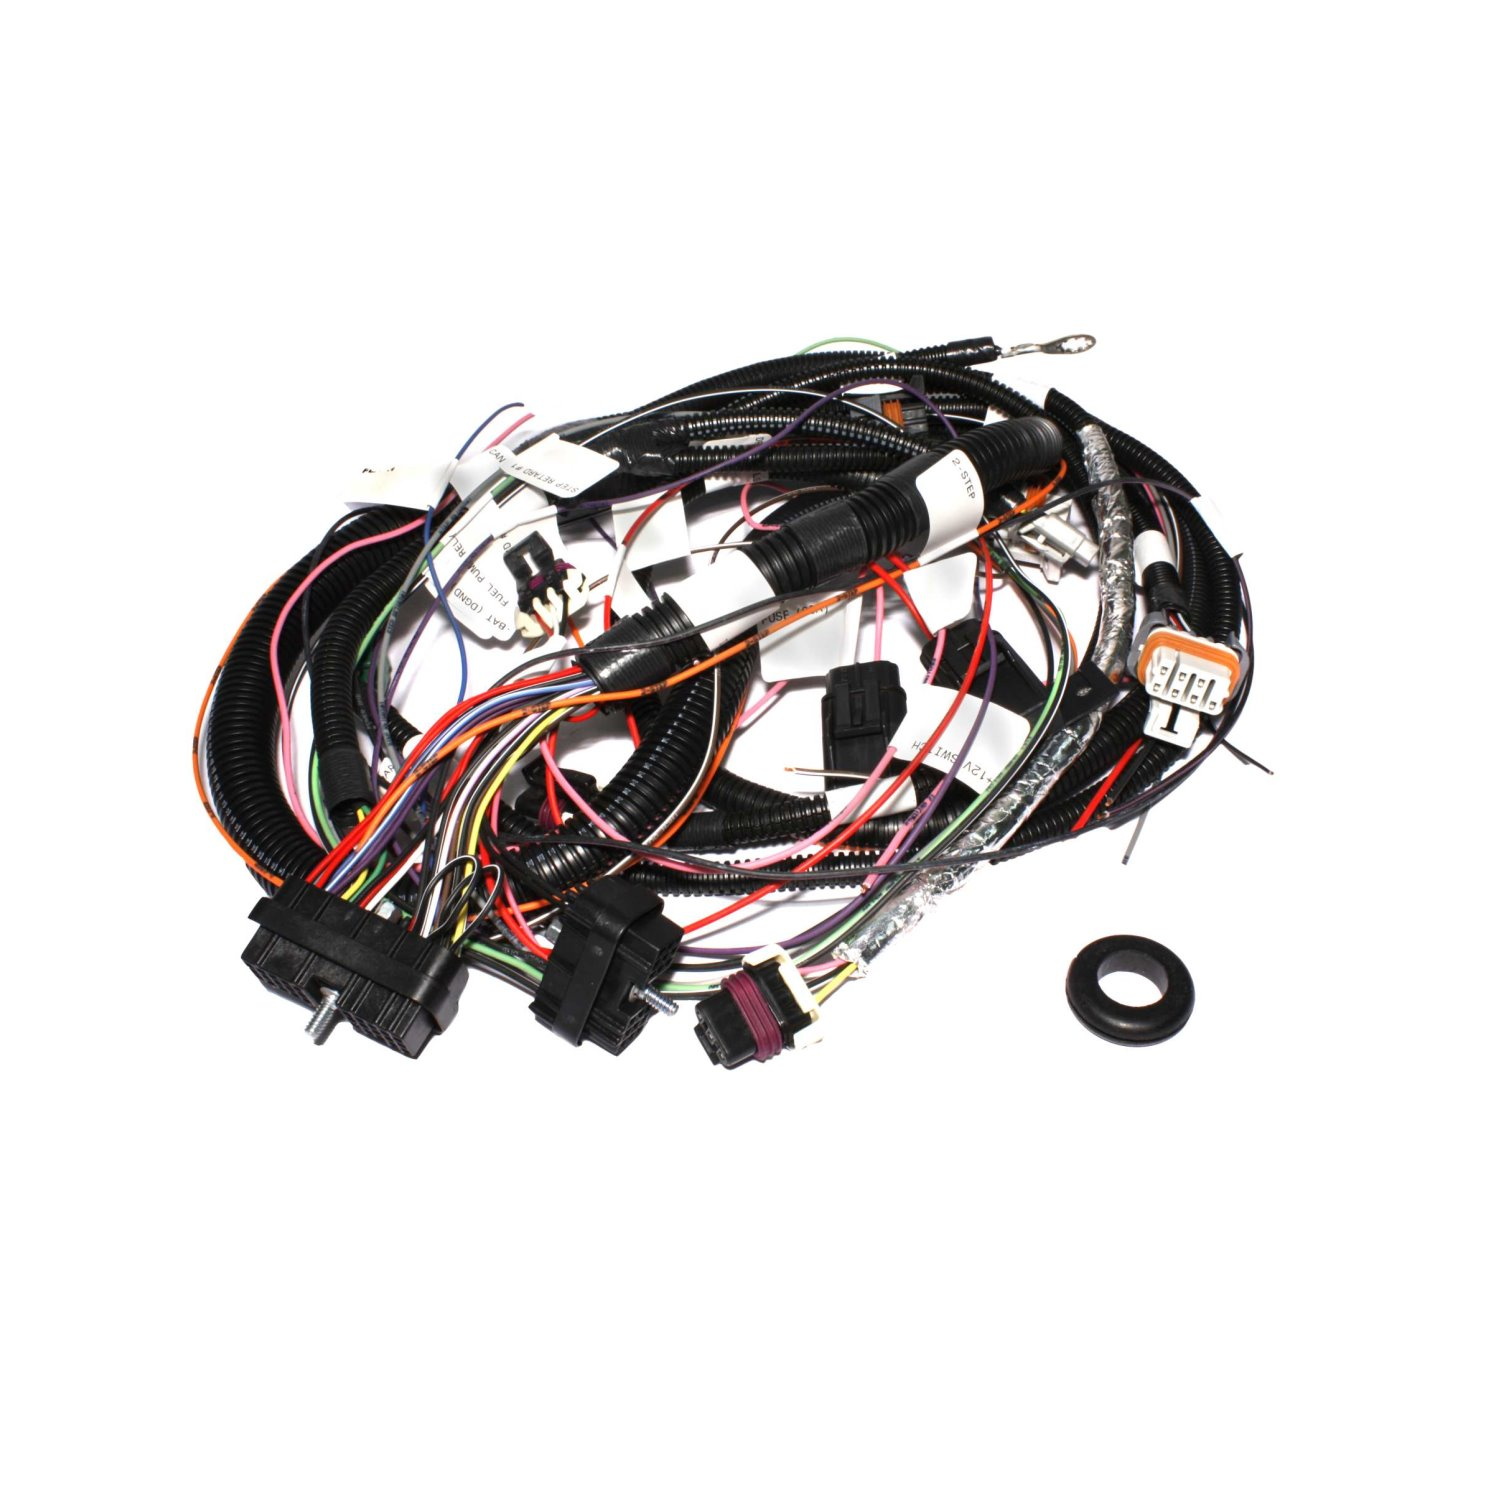 fast ls1 wiring harness circuit connection diagram u2022 rh scooplocal co GM Wiring Harness Harness Wiring Bulkheed